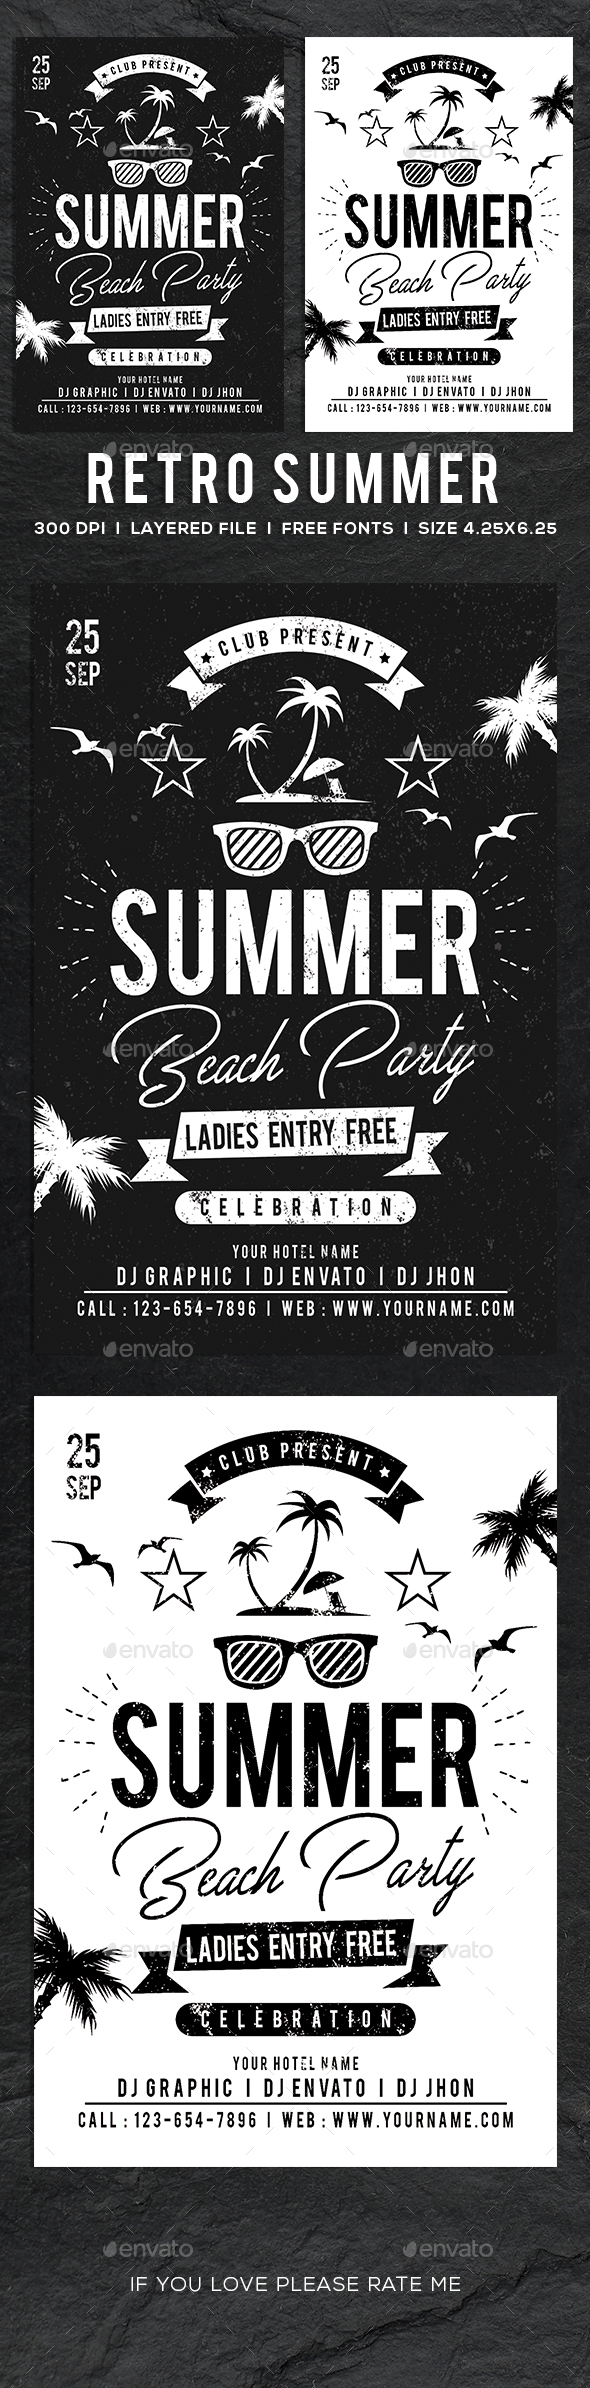 Retro Summer Day Flyer / Poster